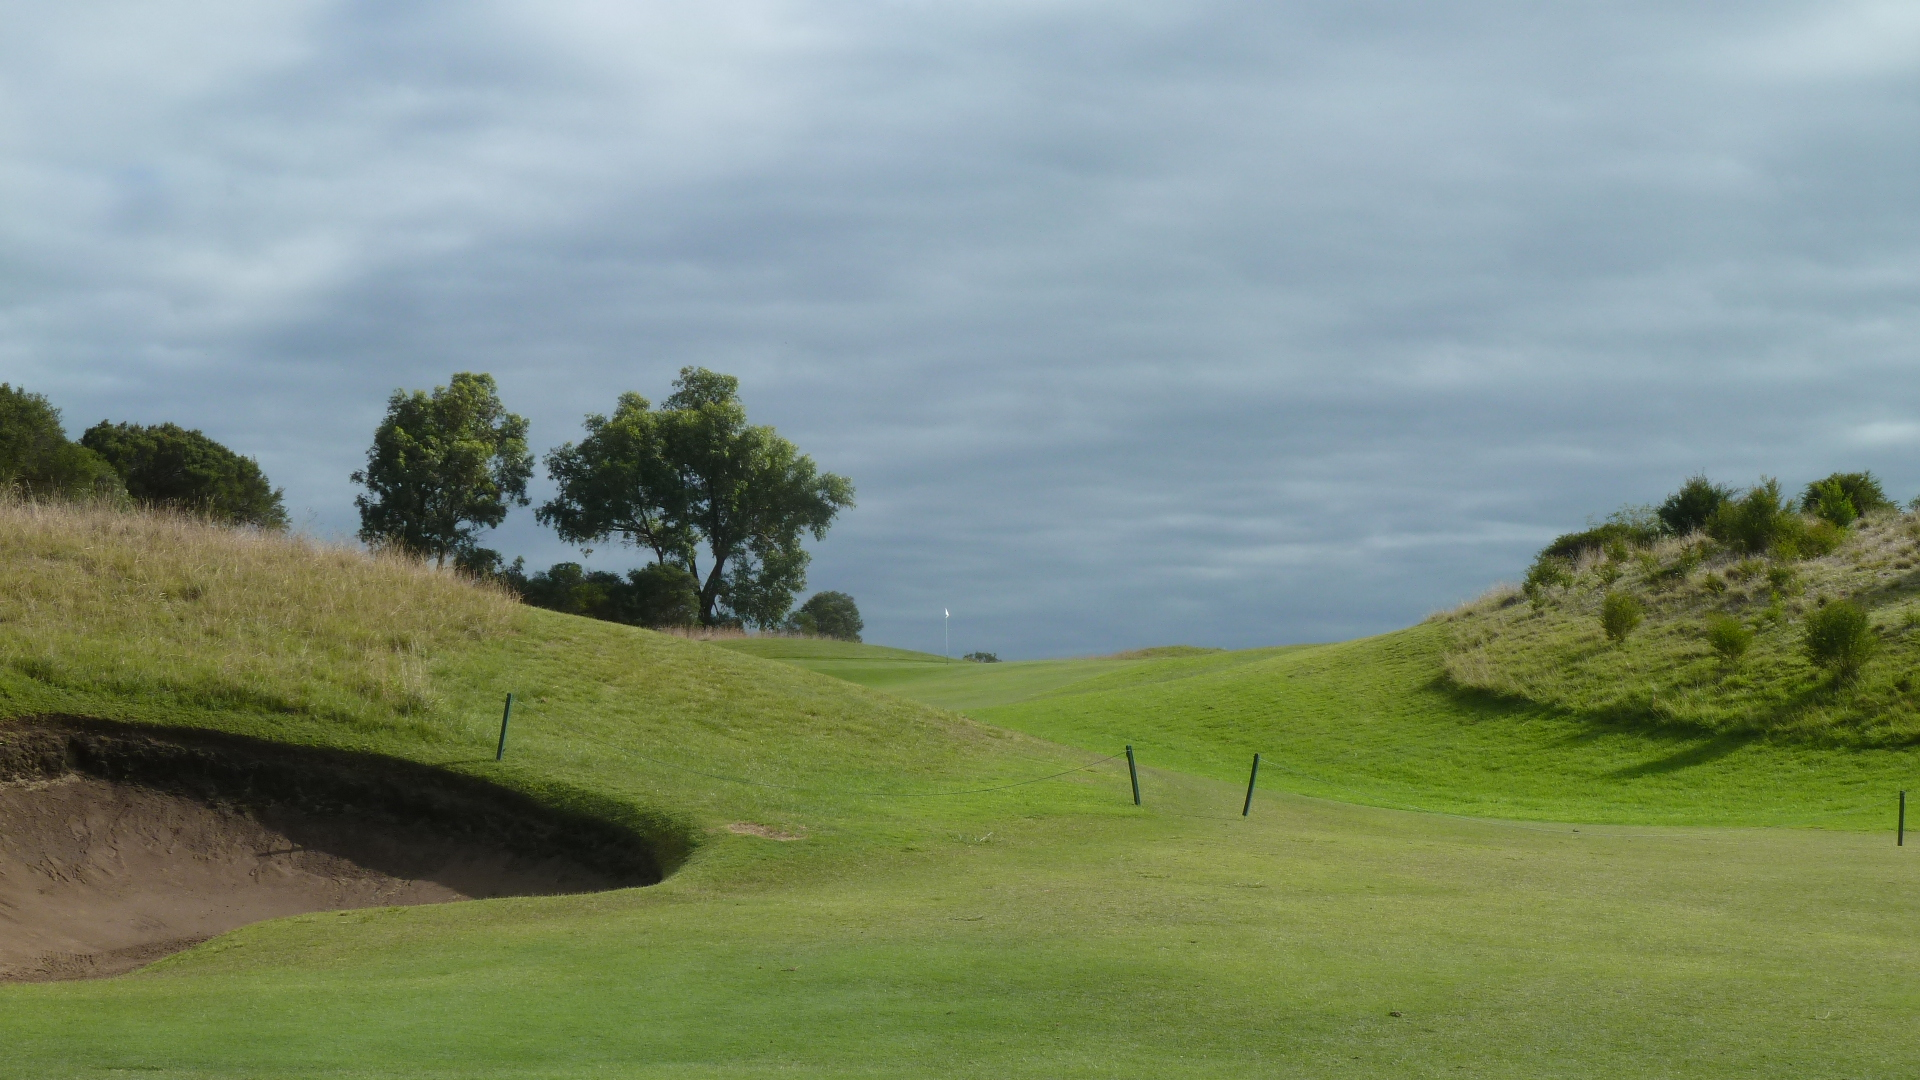 The 3rd fairway at Moonah Links Open Course